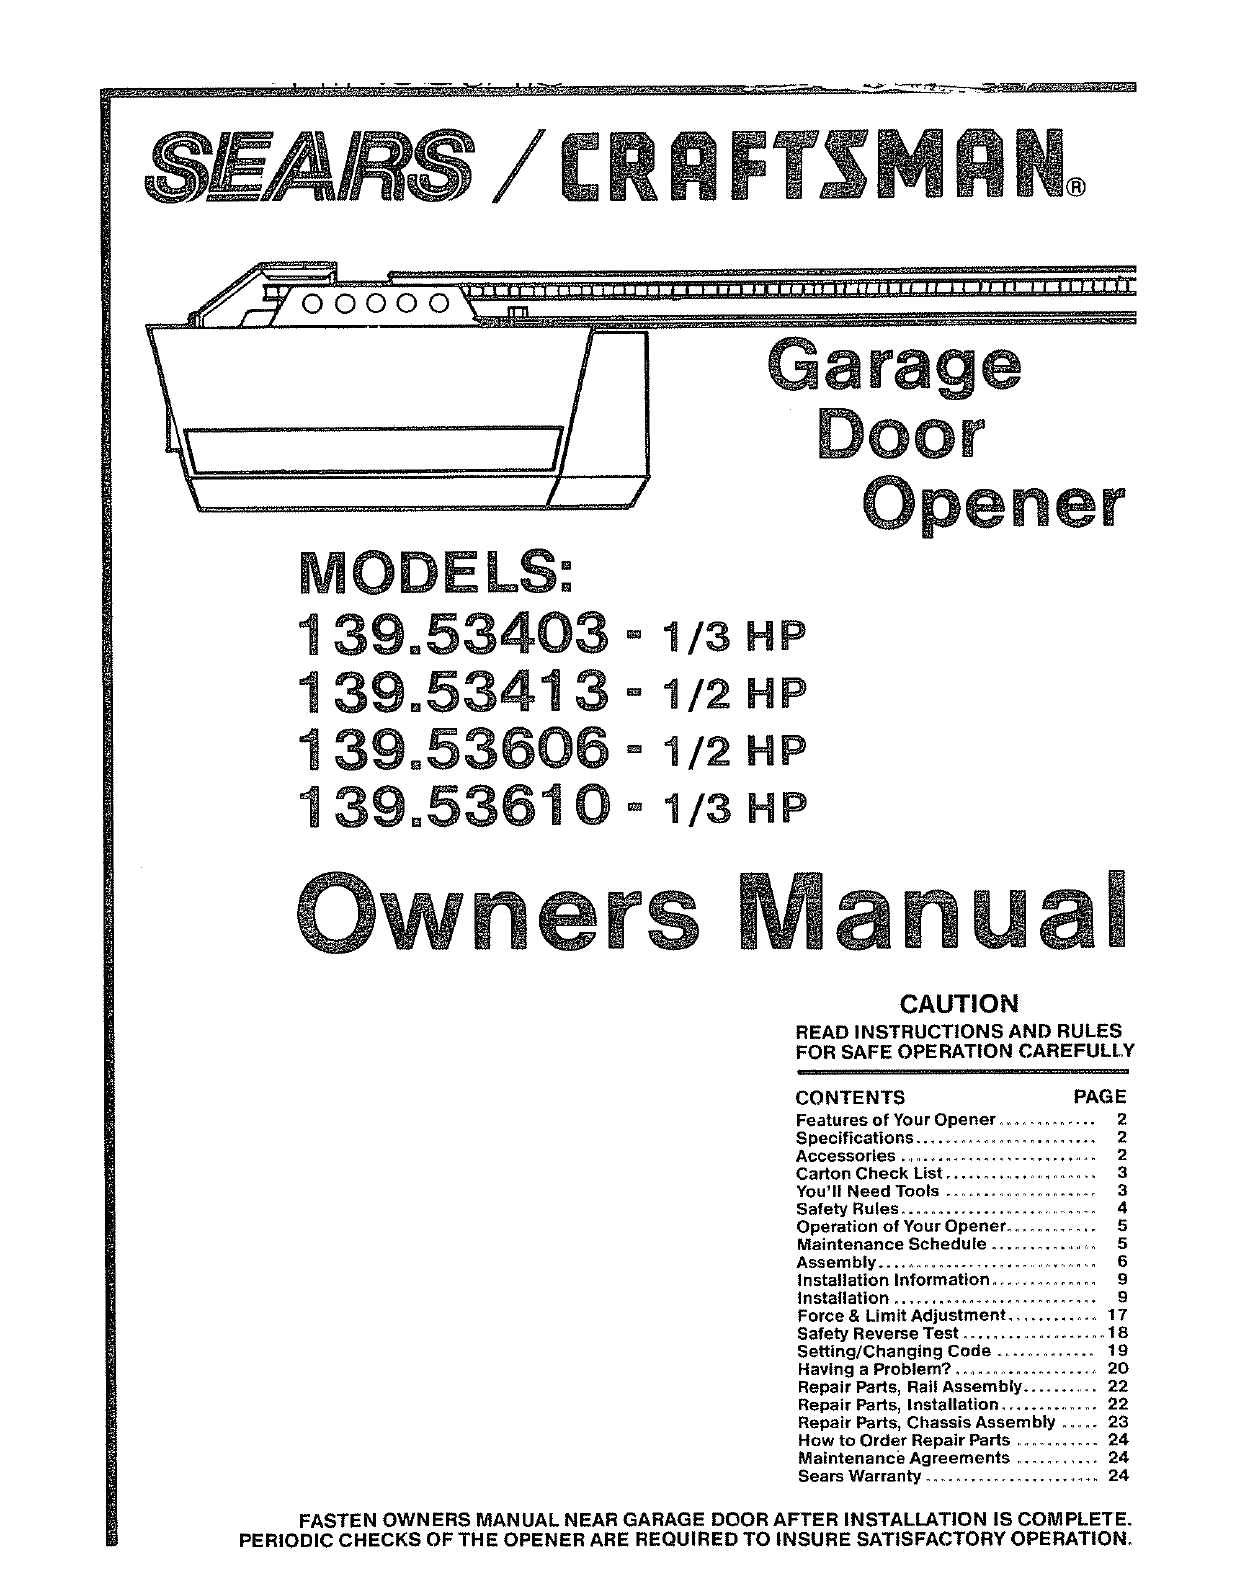 4e24e83f 95d3 4892 ae01 8deb09c598a8 bg1 craftsman garage door opener 139 53403 user guide manualsonline com Chamberlain Garage Door Opener Wiring- Diagram at virtualis.co